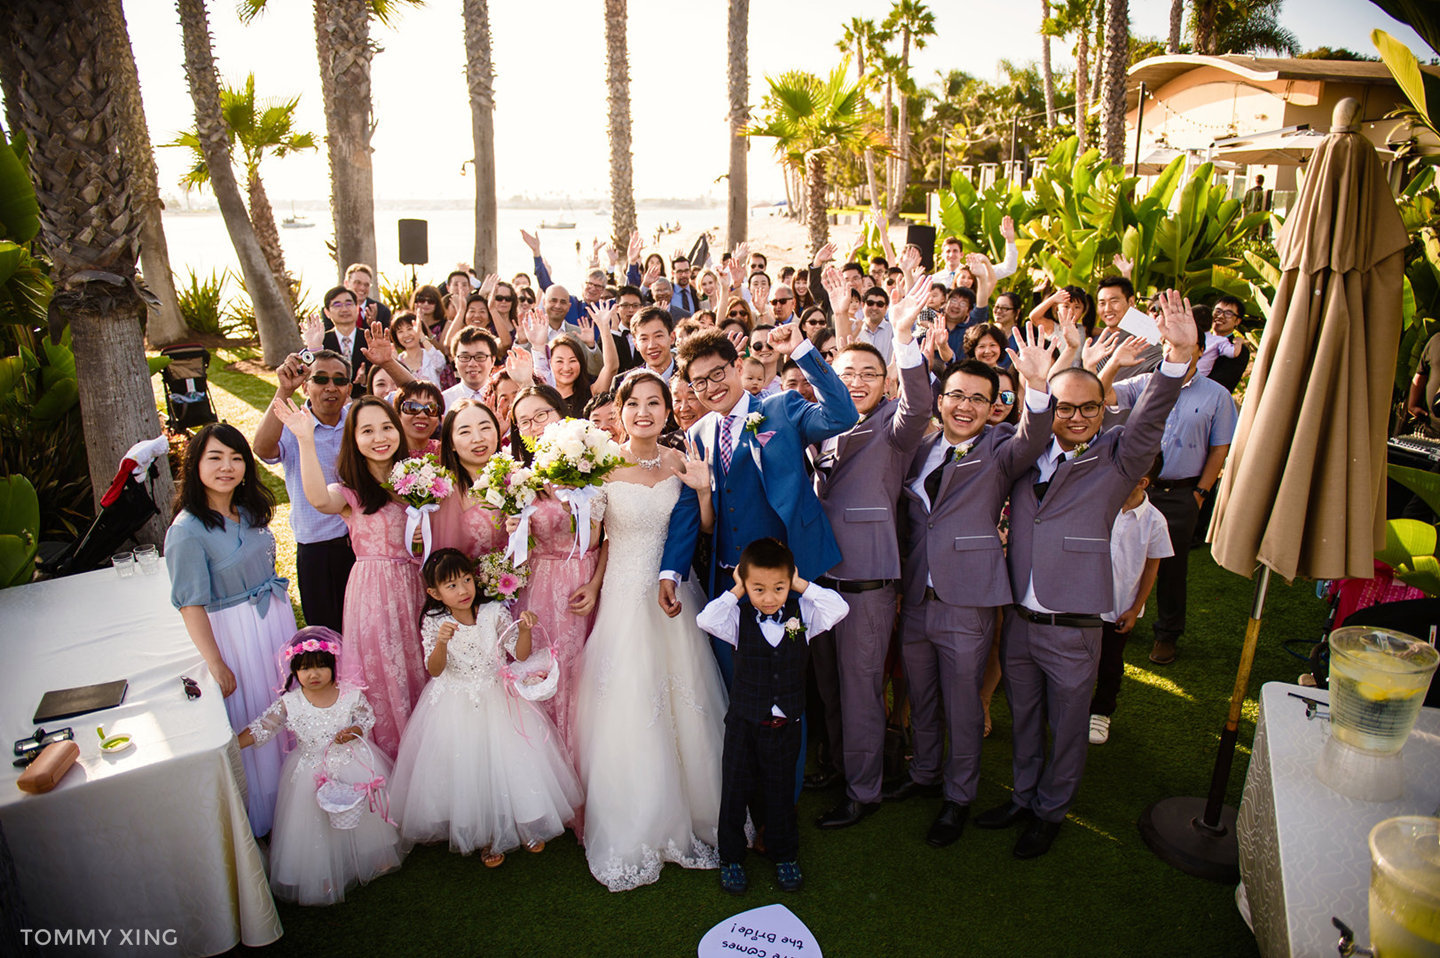 Paradise Point Resort Wedding Xiaolu & Bin San Diego 圣地亚哥婚礼摄影跟拍 Tommy Xing Photography 洛杉矶婚礼婚纱照摄影师 187.jpg